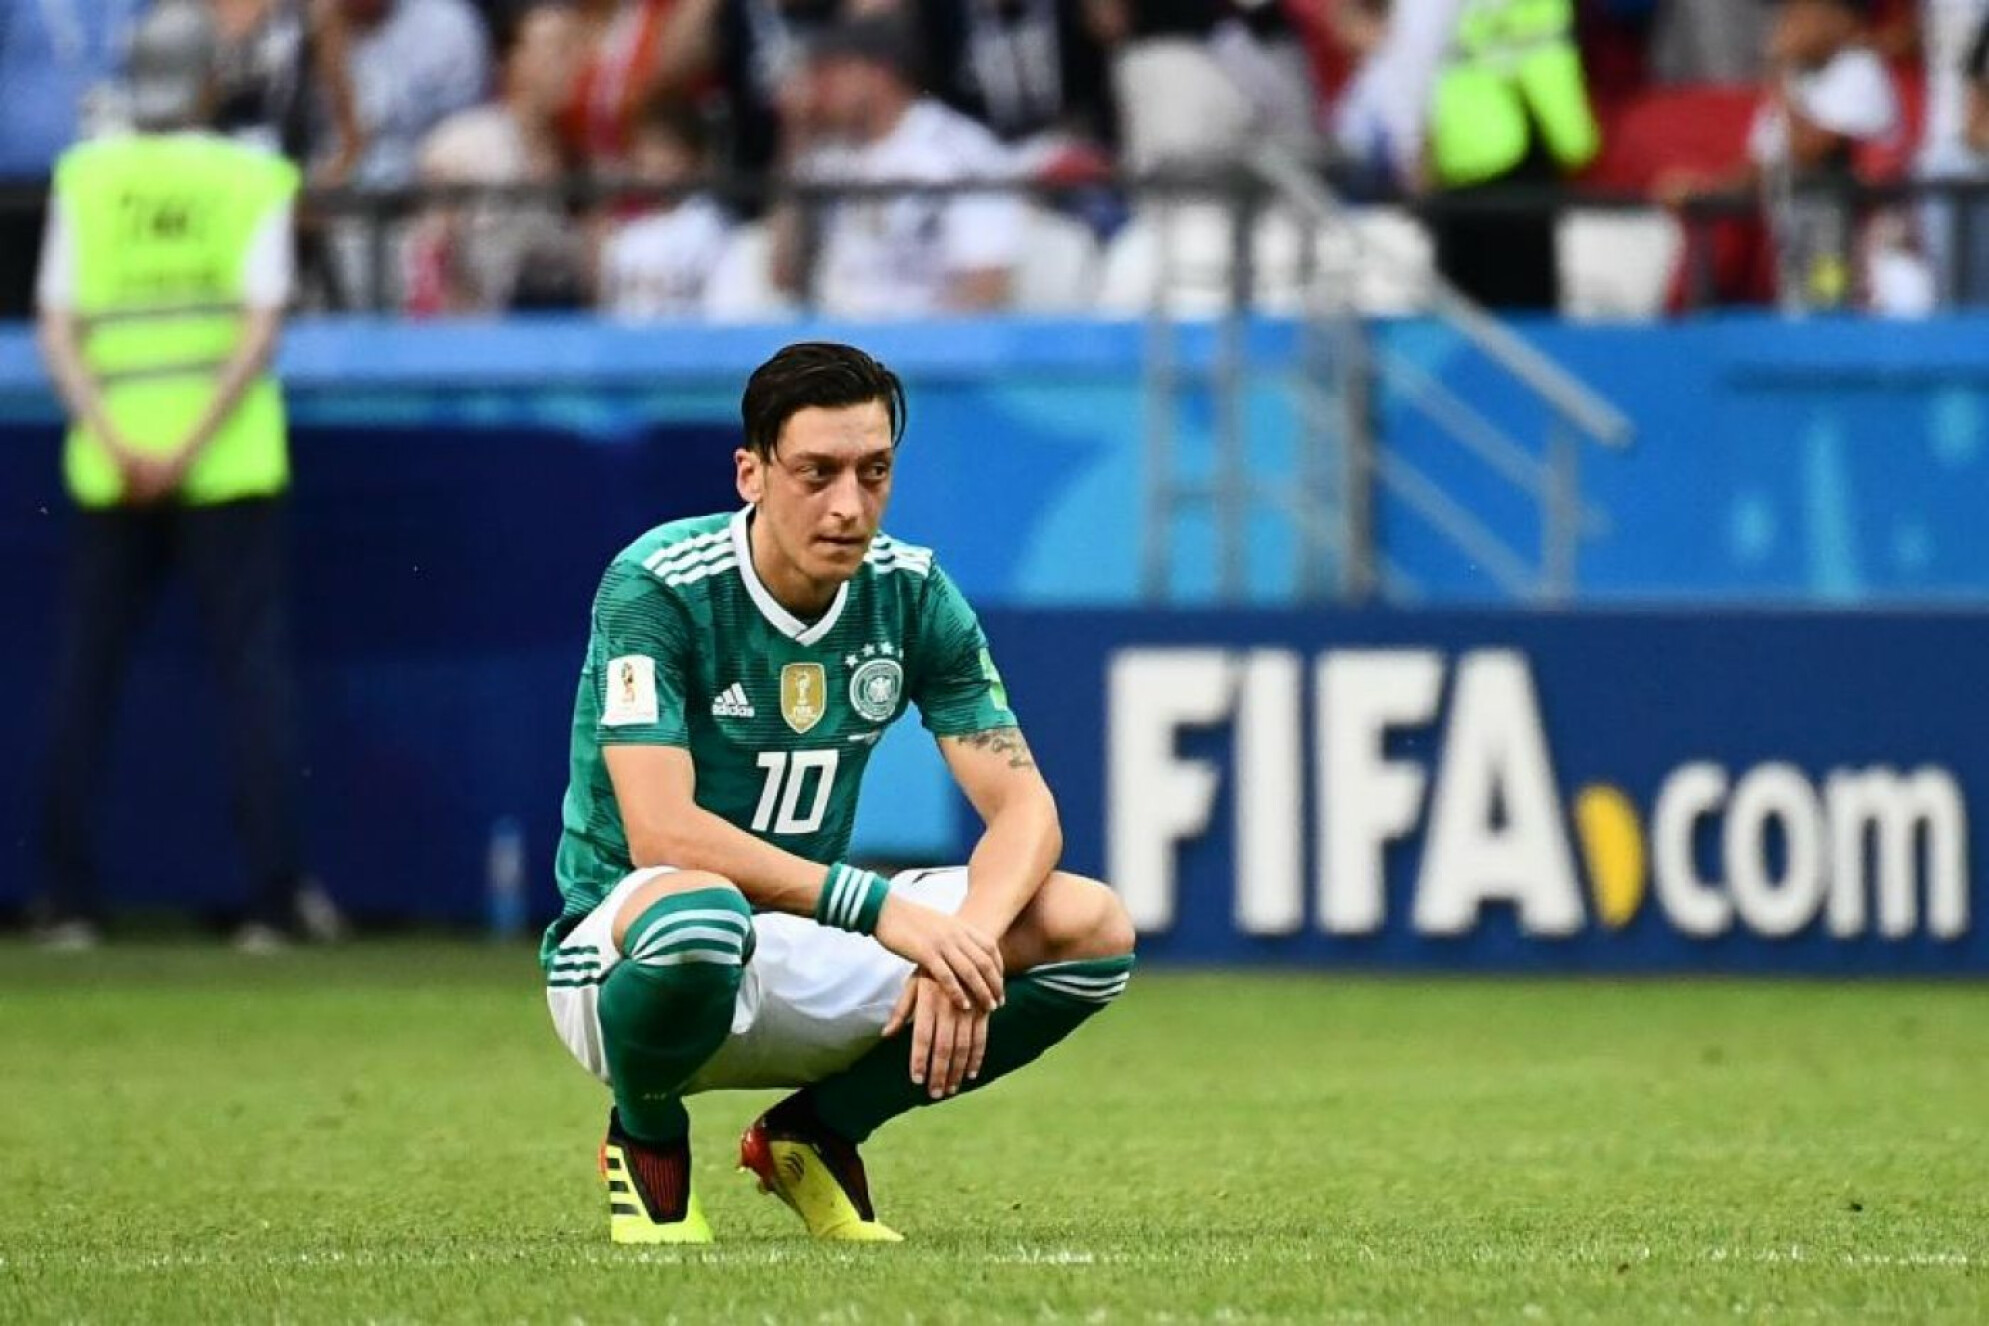 Sign the petition: Mesut Ozil, We stand with you